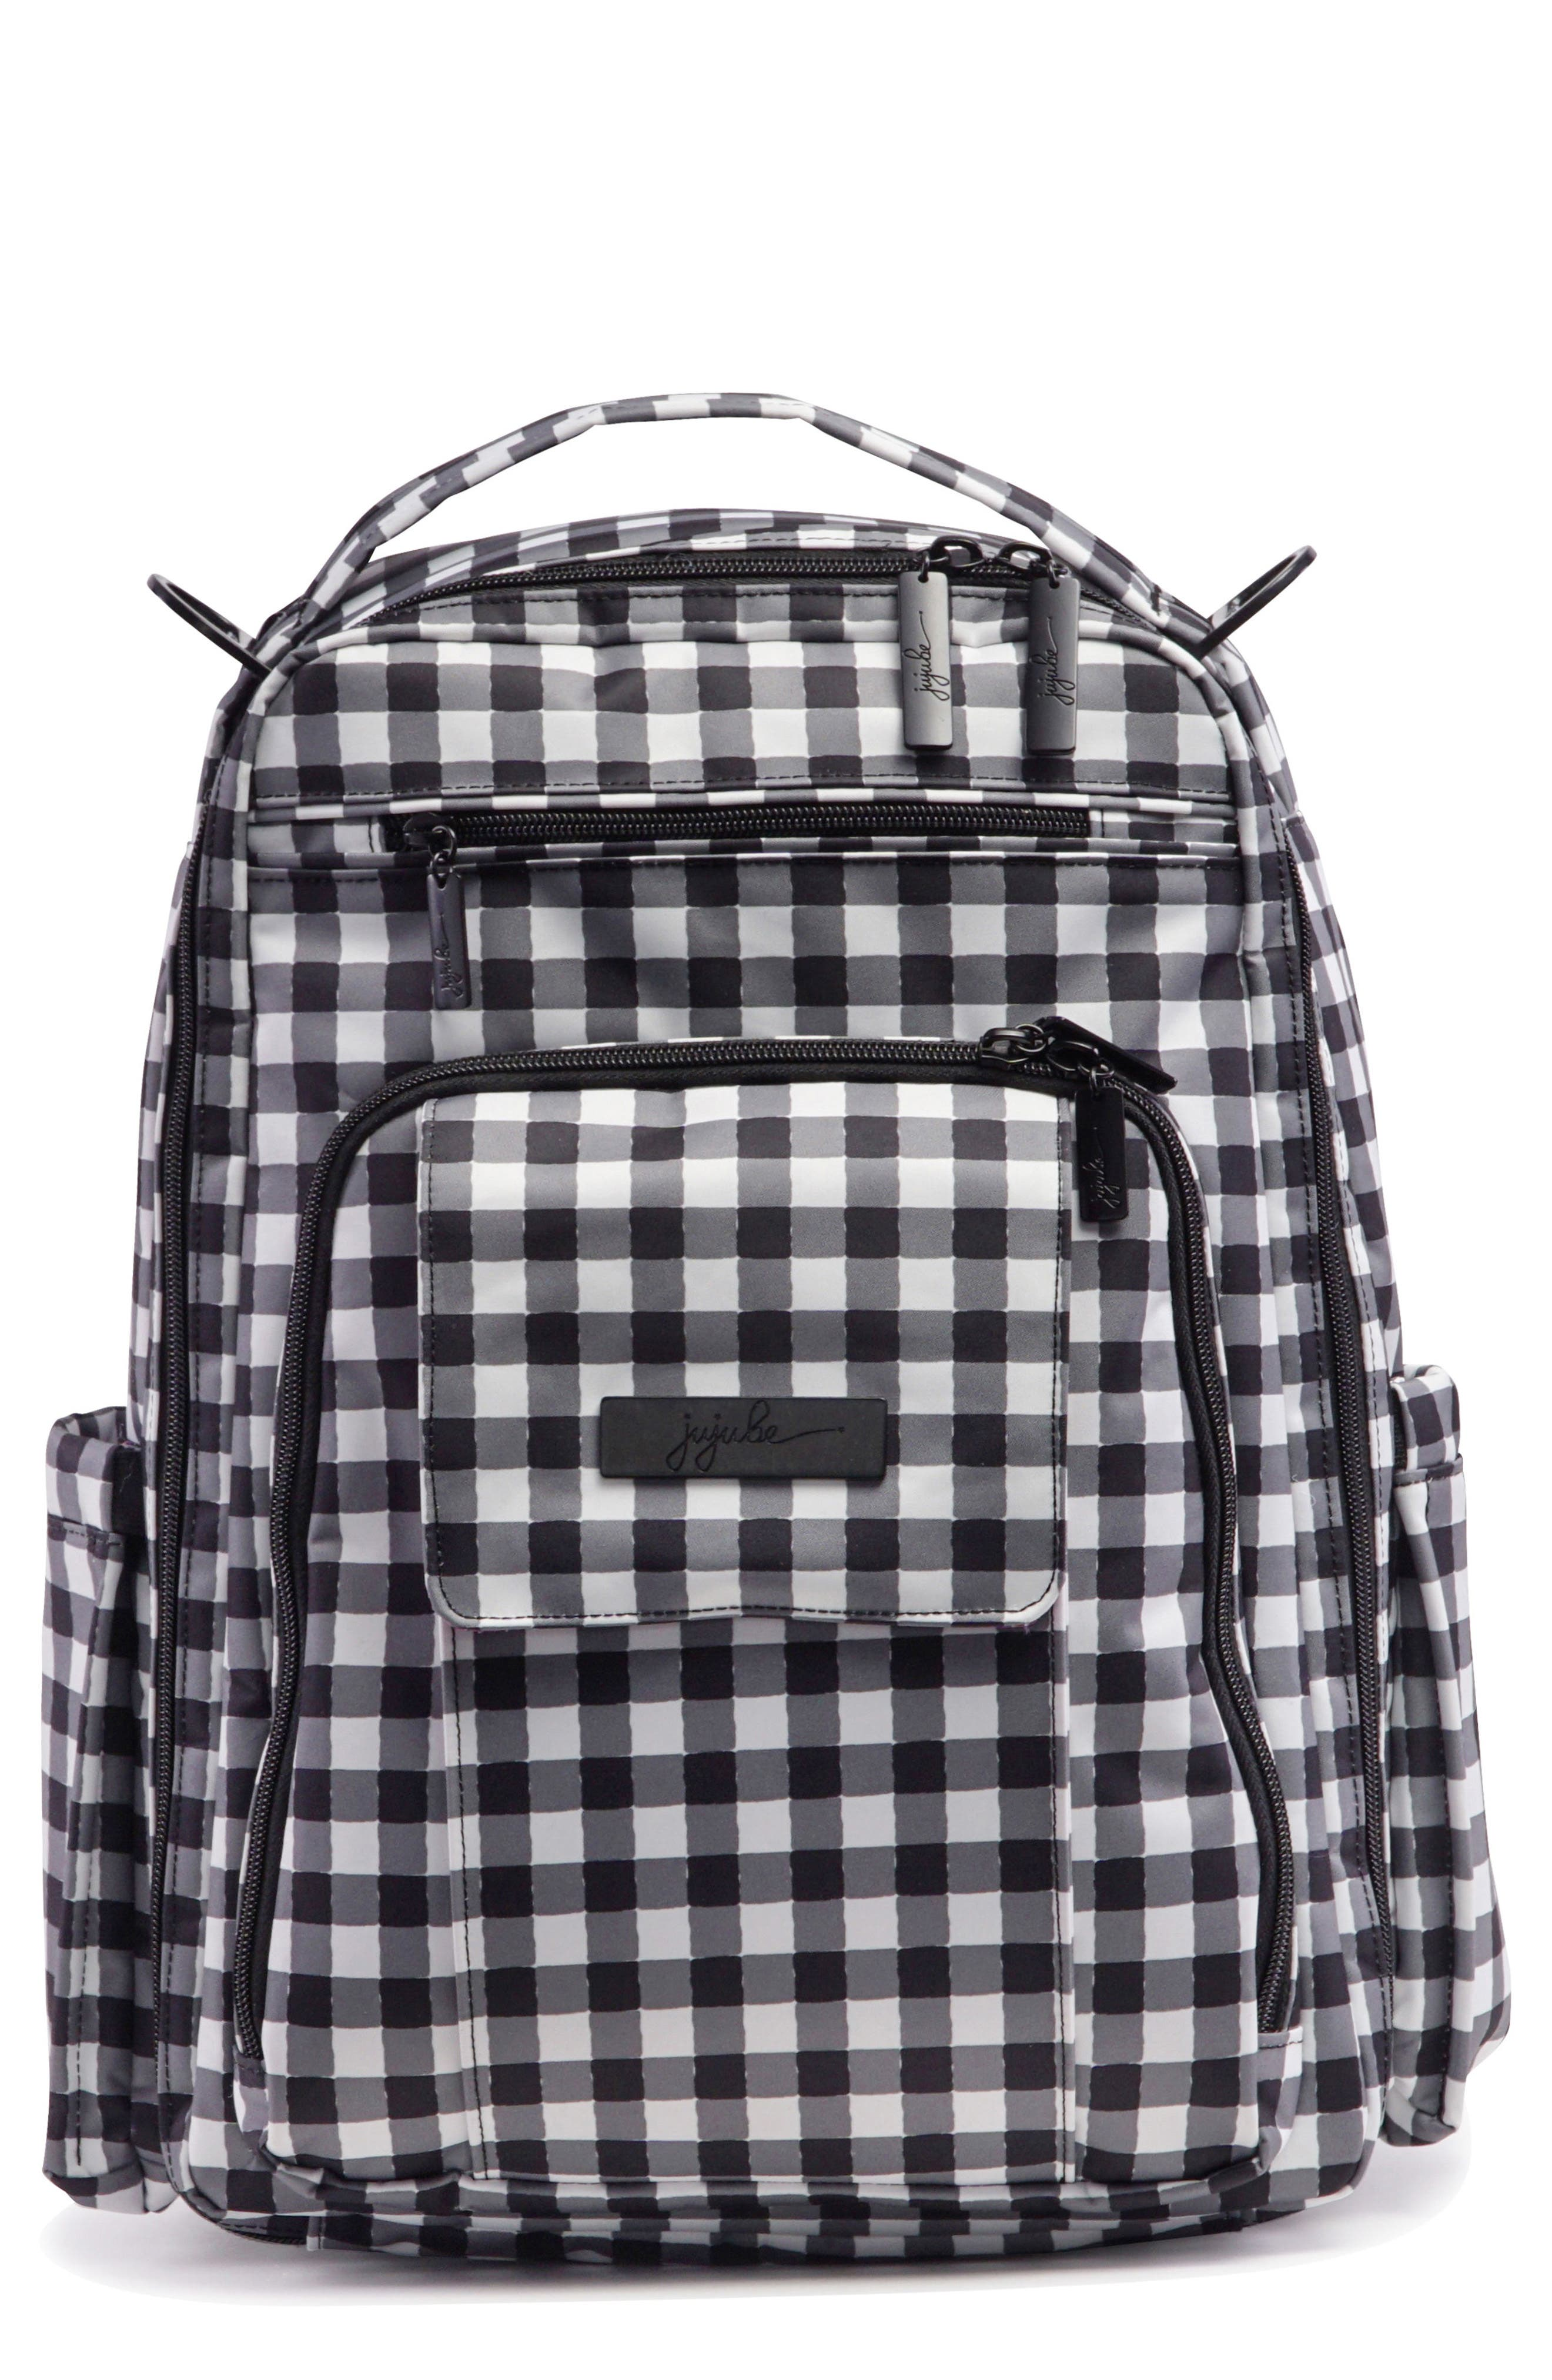 'Be Right Back - Onyx Collection' Diaper Backpack,                             Main thumbnail 1, color,                             Gingham Style